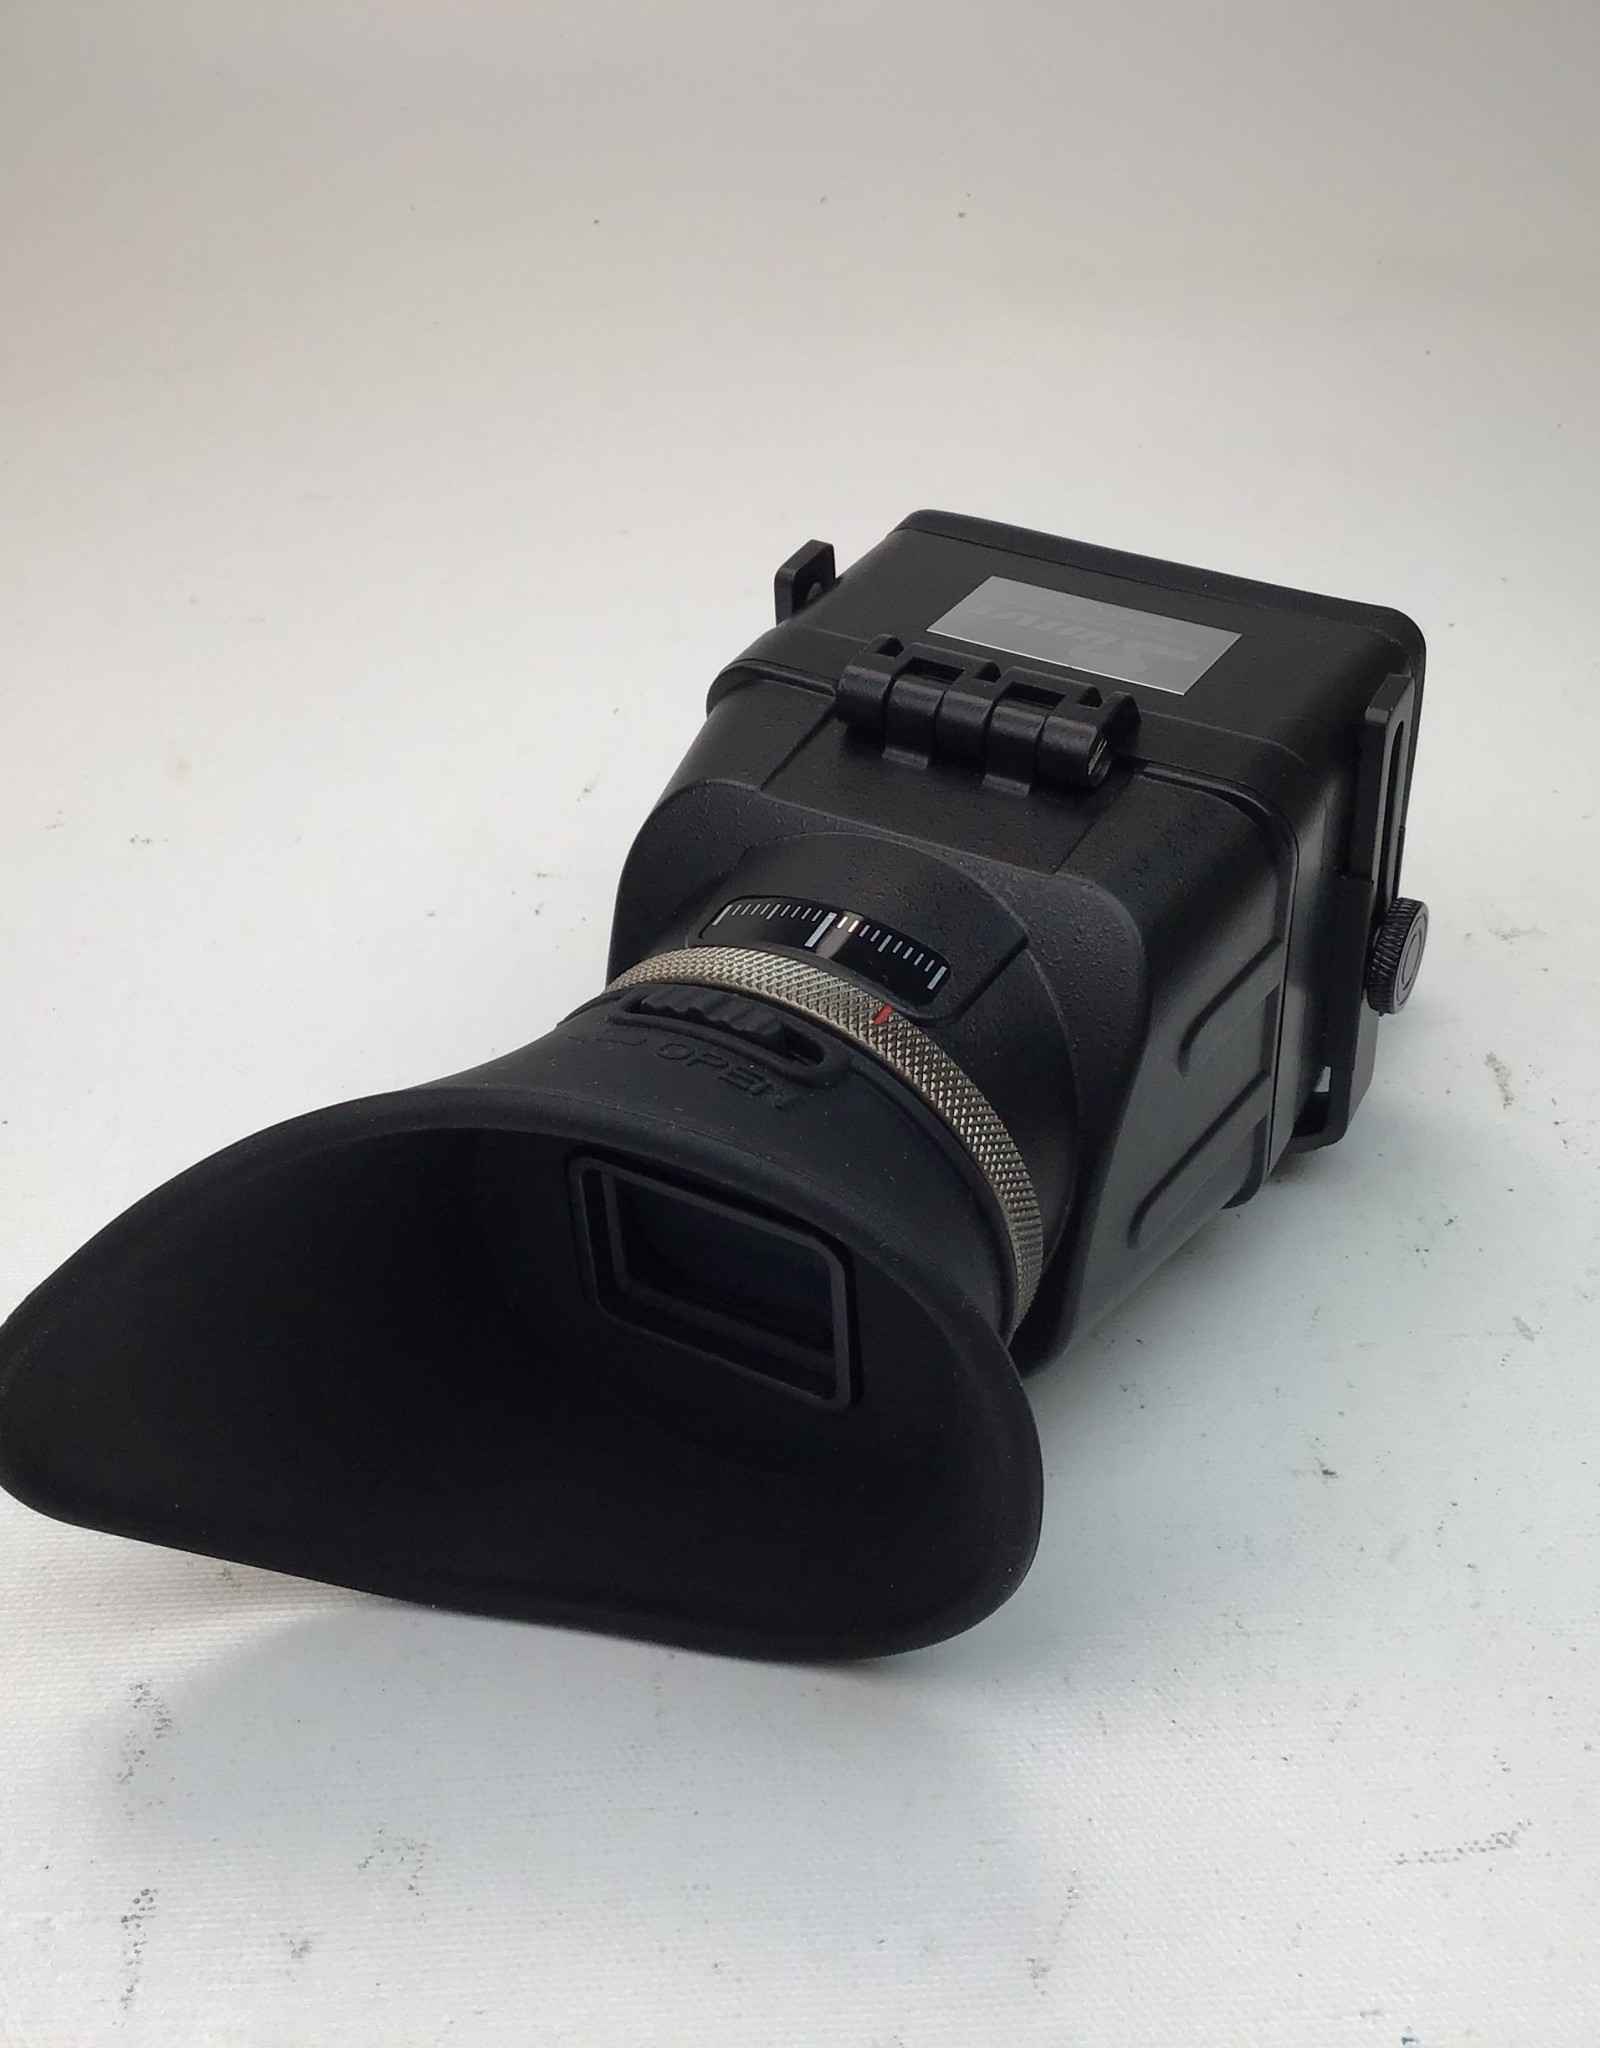 Swivi Foldable Optical Viewfinder in Box Used Ex